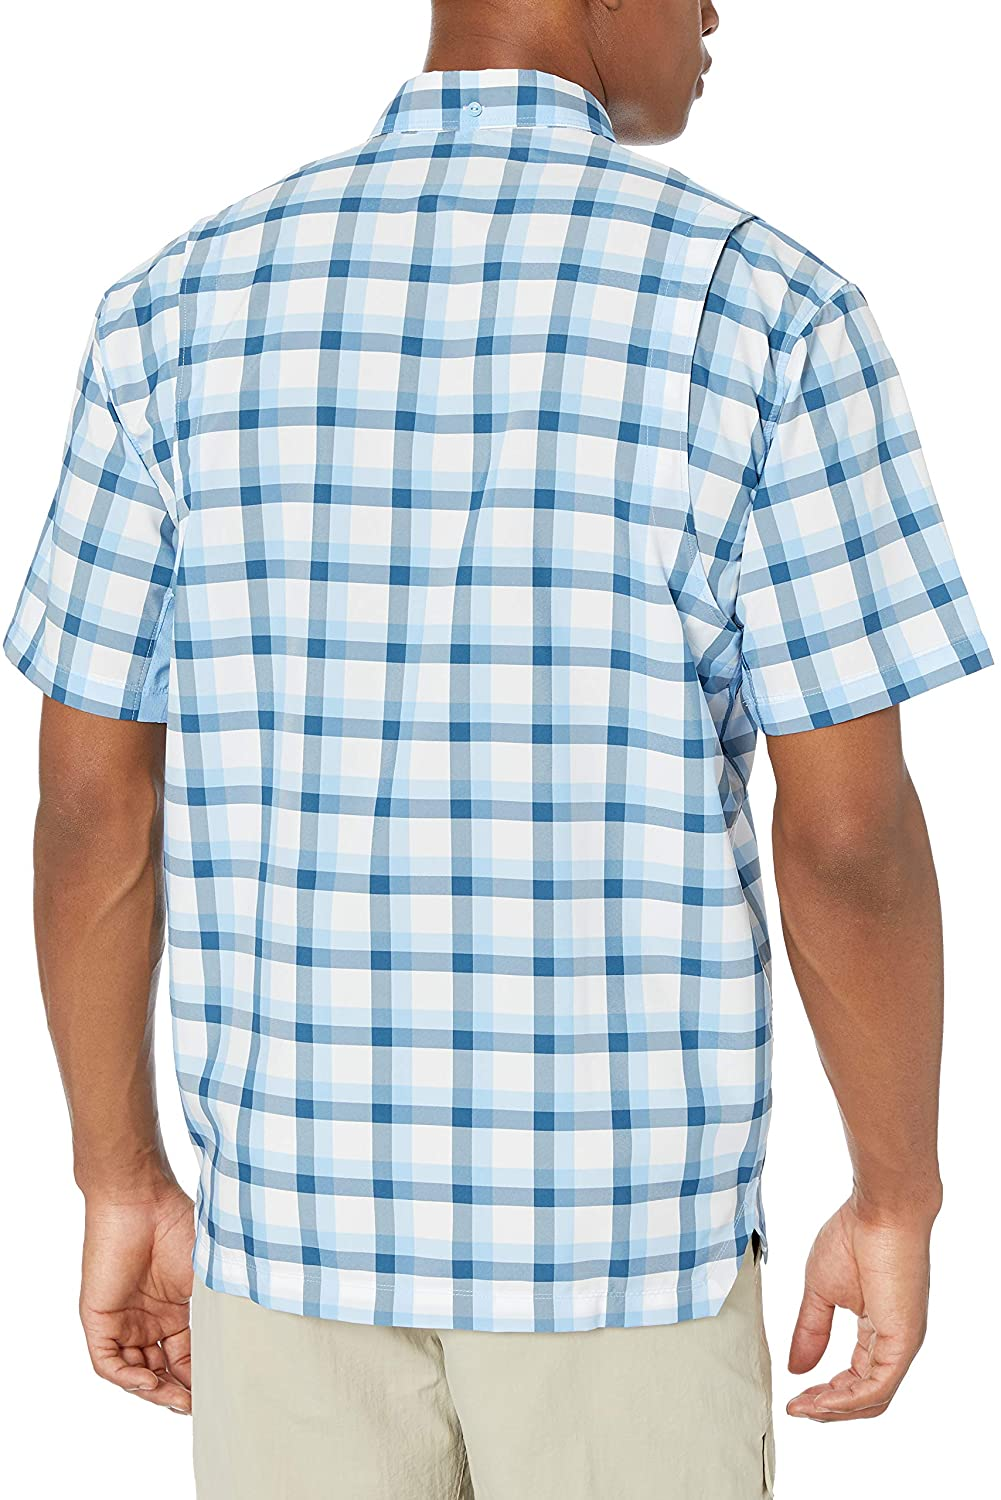 Under Armour Outerwear Men's UA Tide Chaser Plaid SS, Carolina Blue (475)/Elemental, X-Large